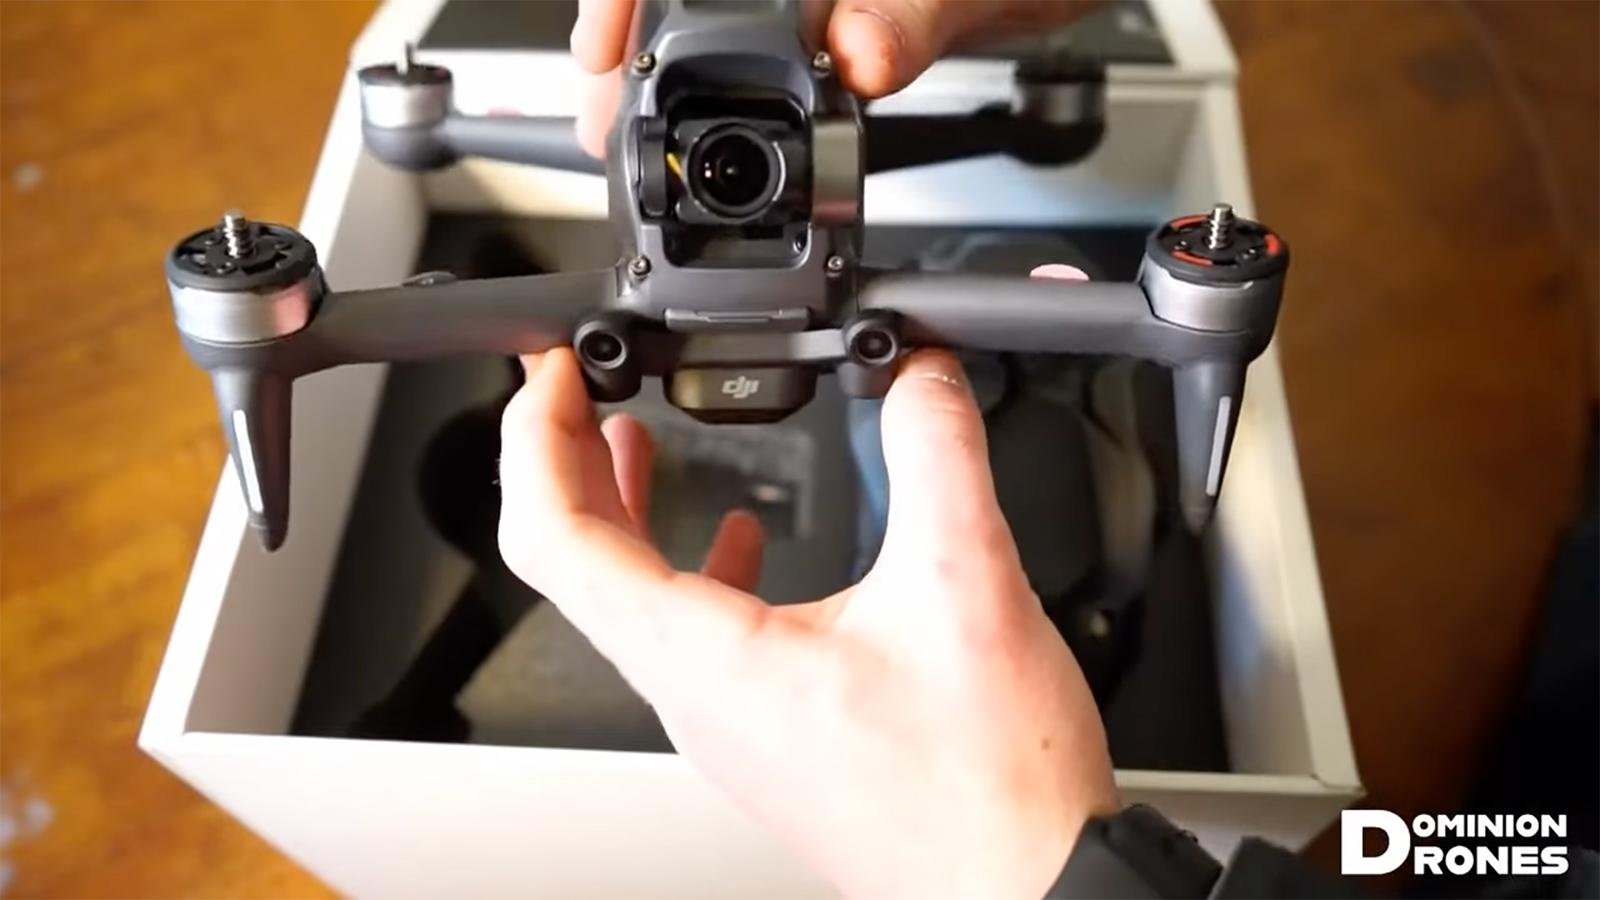 DJI's future first-person drone surfaces in an unboxing video - Engadget